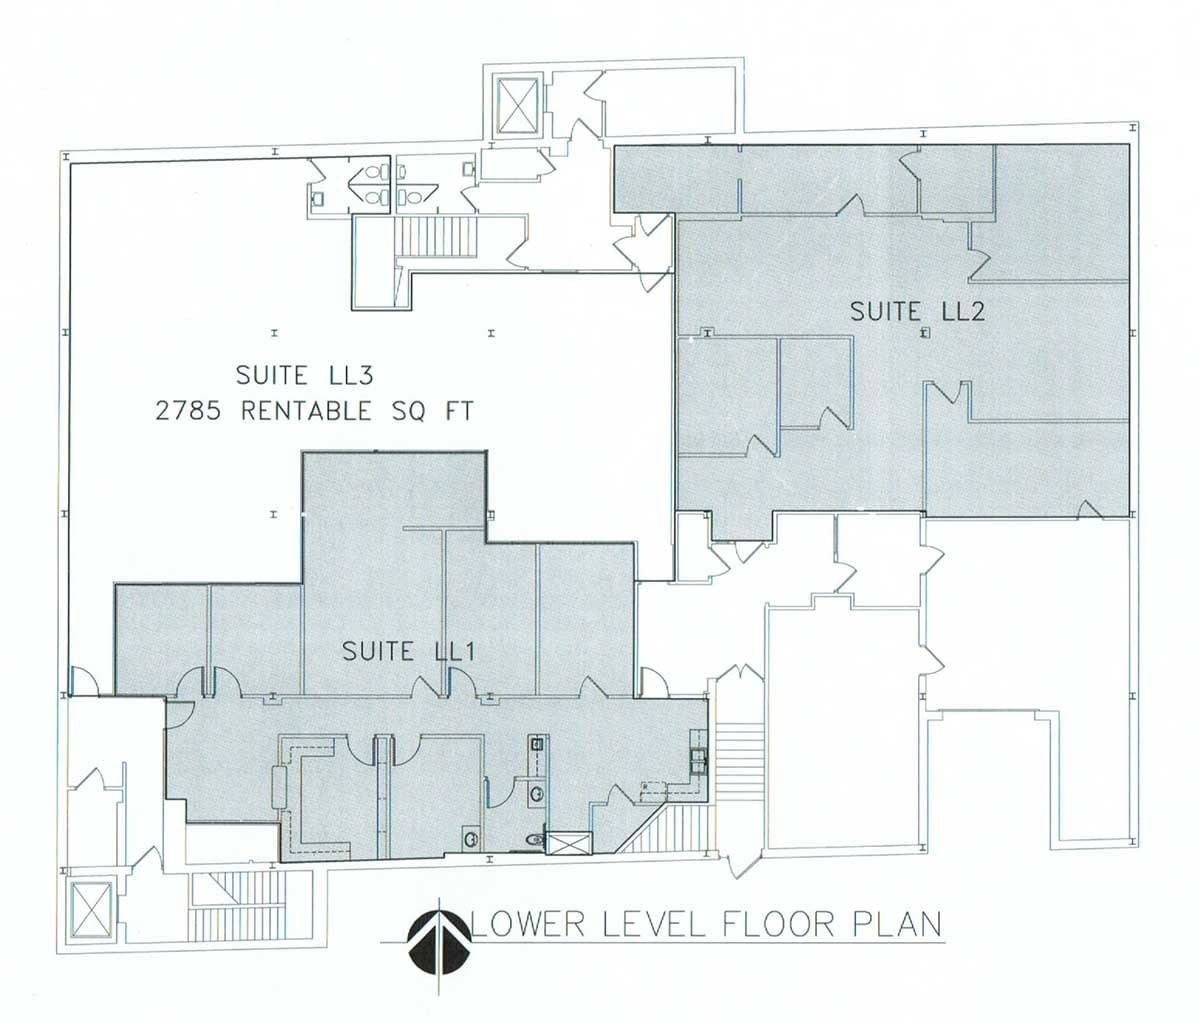 LowerLevelFloorPlan